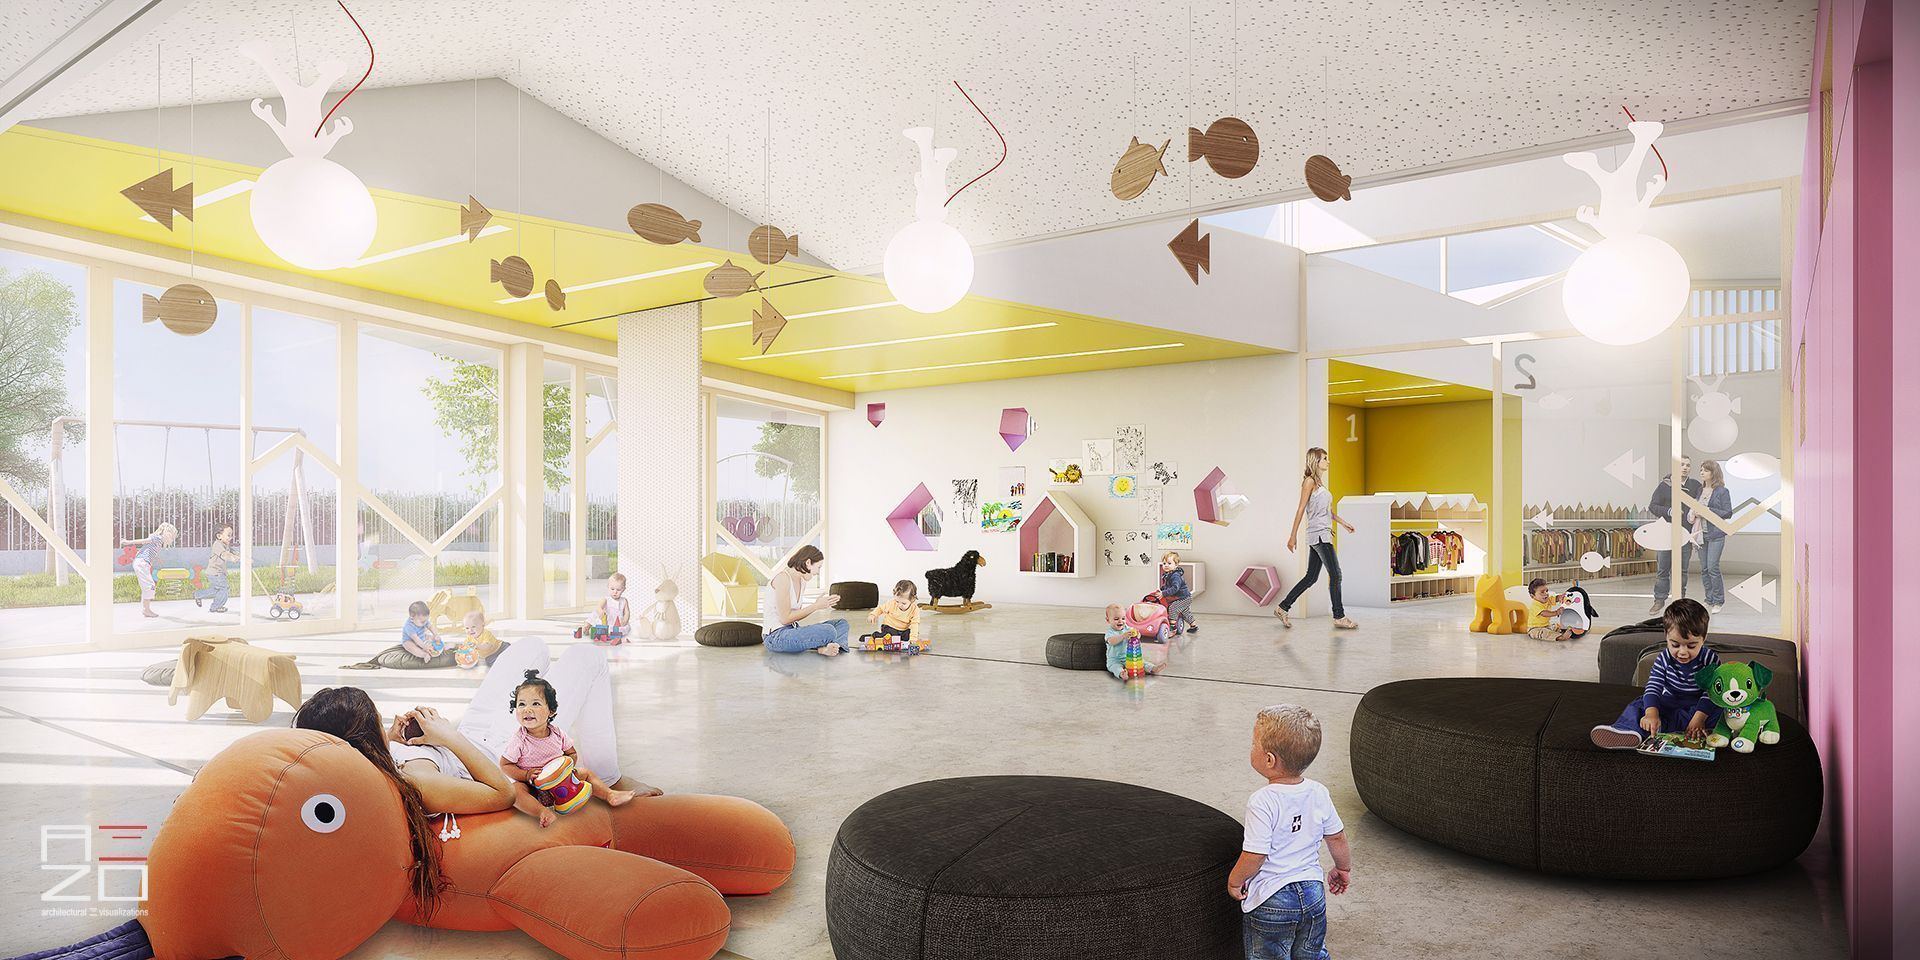 First Prize Competition Kindergarten Visualization Arquitectura Render Visualization